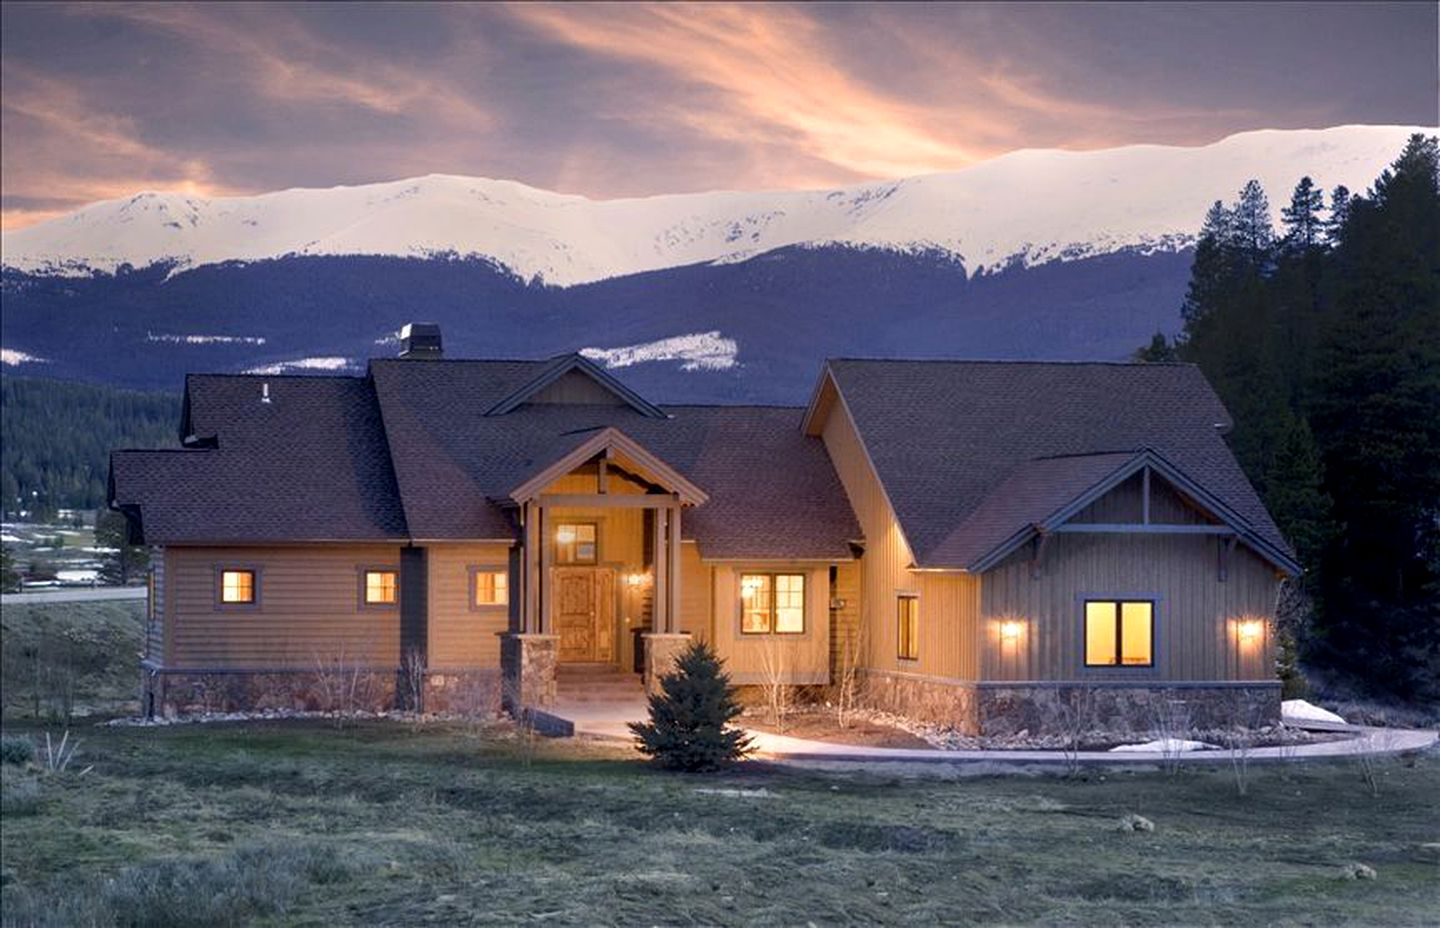 Nature Lodges (Breckenridge, Colorado, United States)